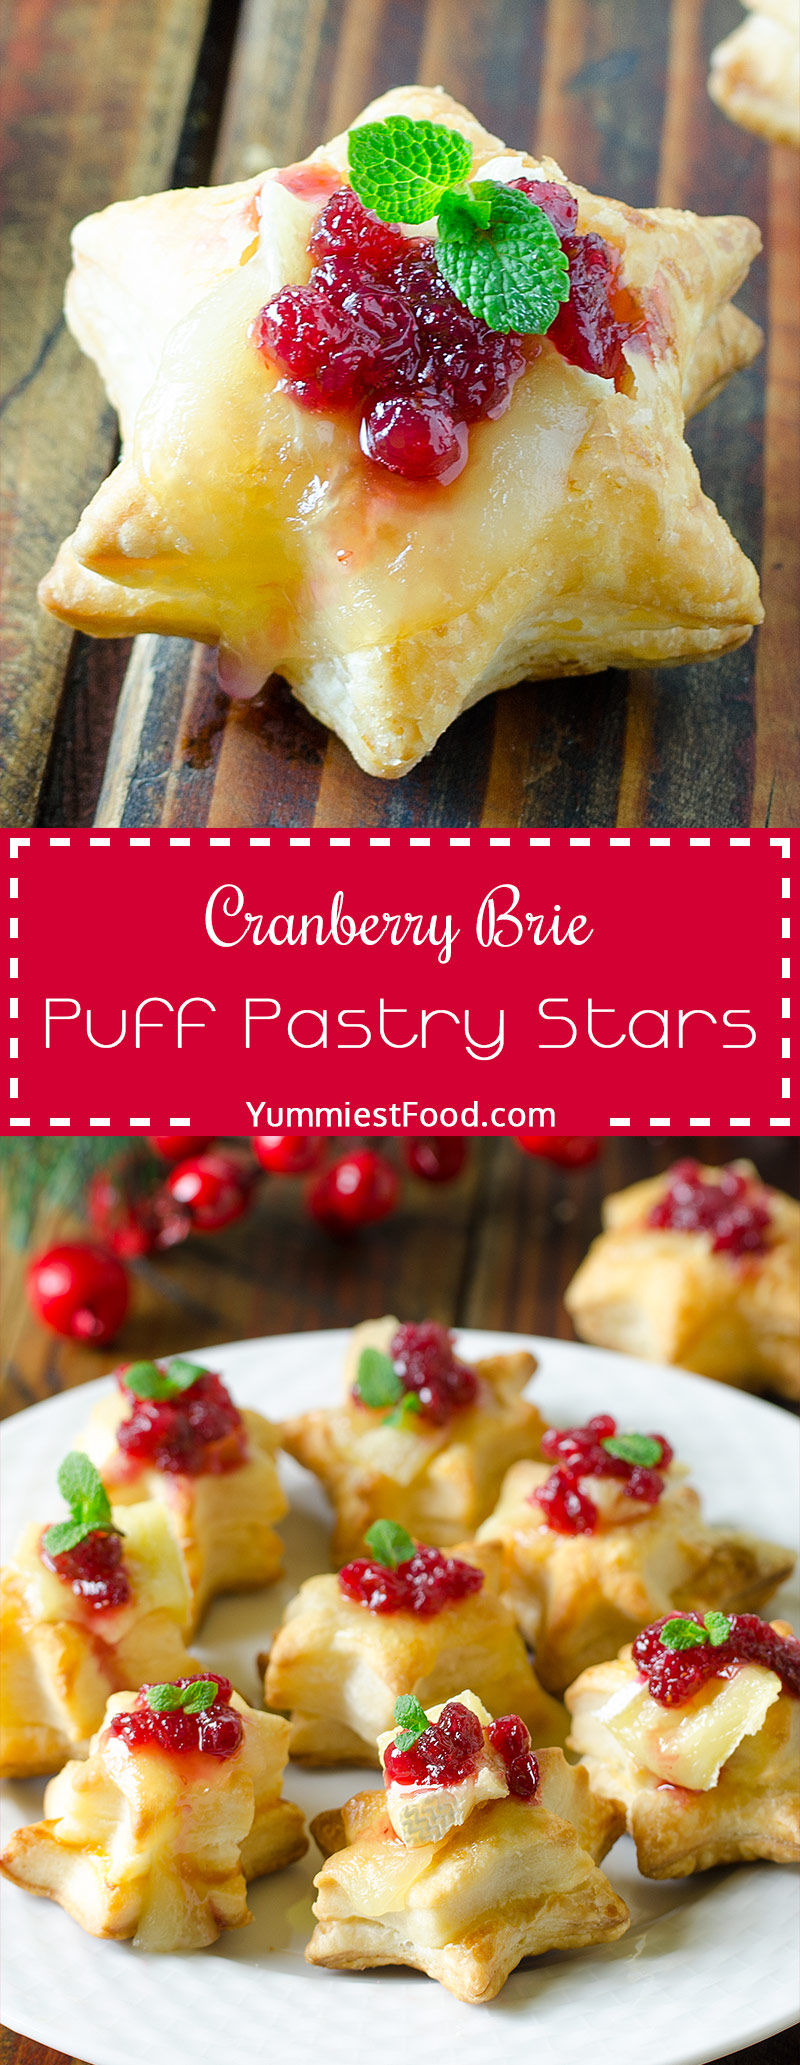 CHRISTMAS CRANBERRY BRIE PUFF PASTRY STARS – Quick and Easy appetizer perfect for Christmas! Puff pastry stars topped with brie and cranberry sauce